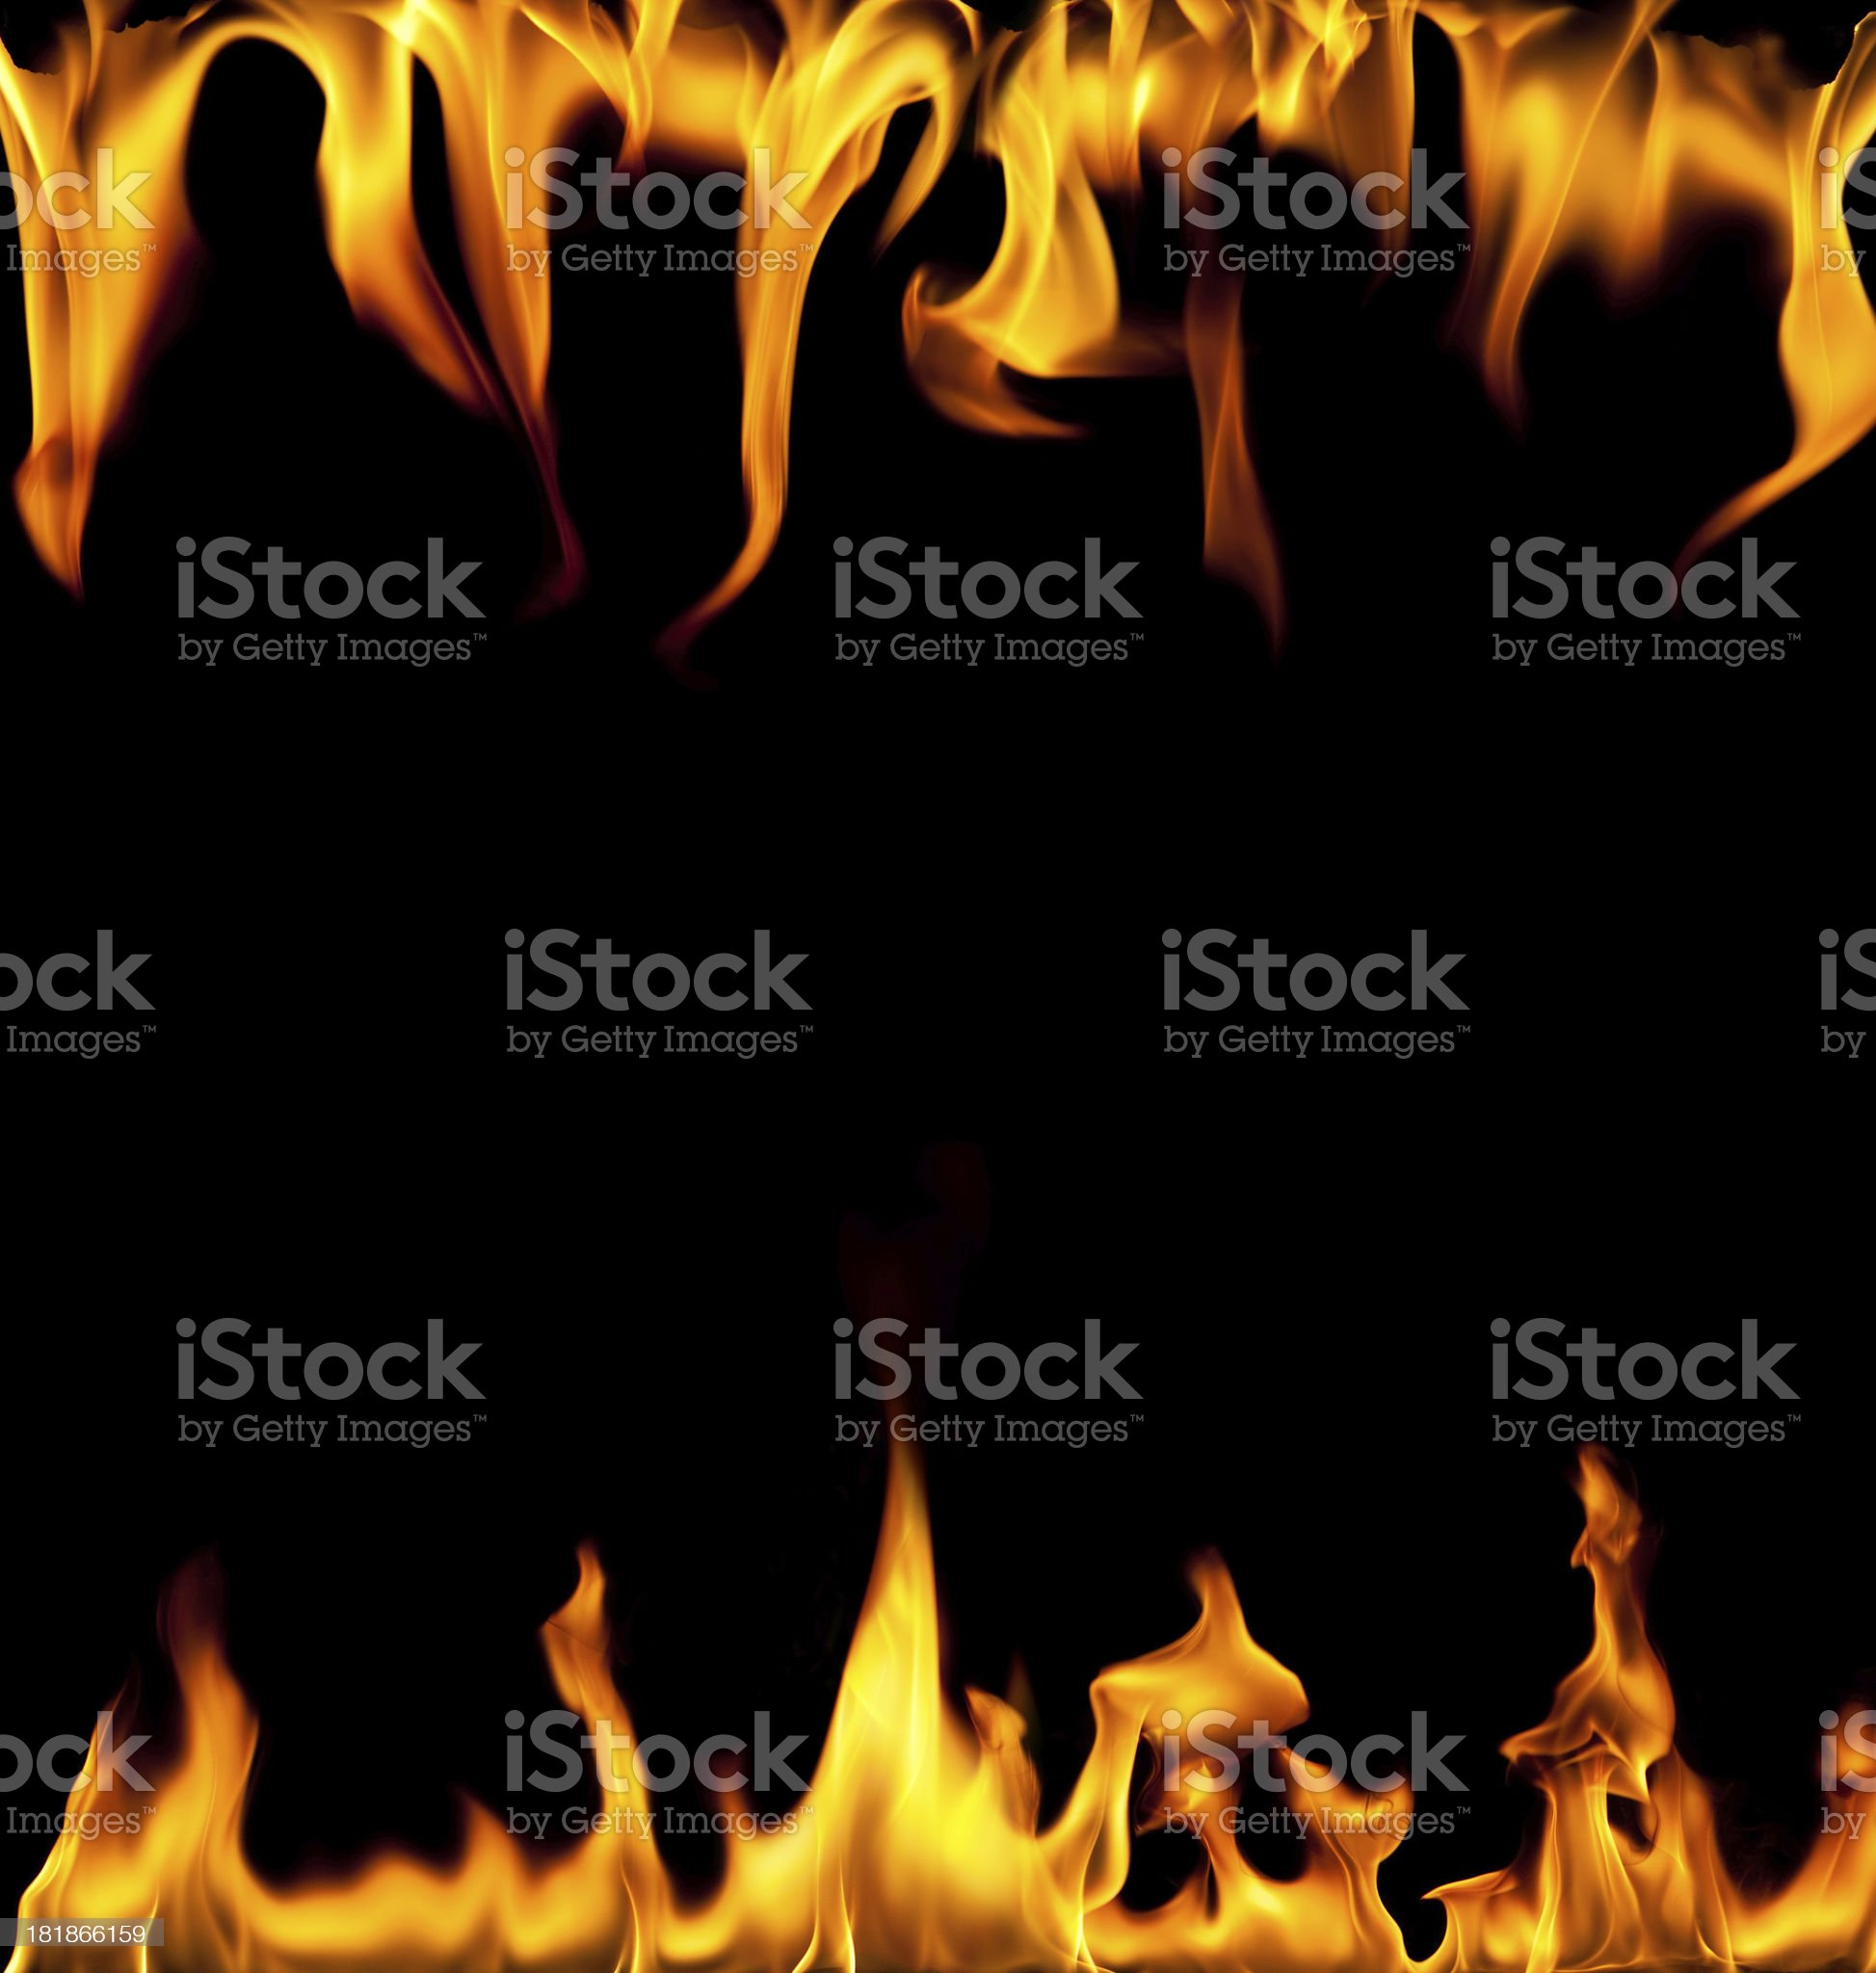 Frame of fire royalty-free stock photo